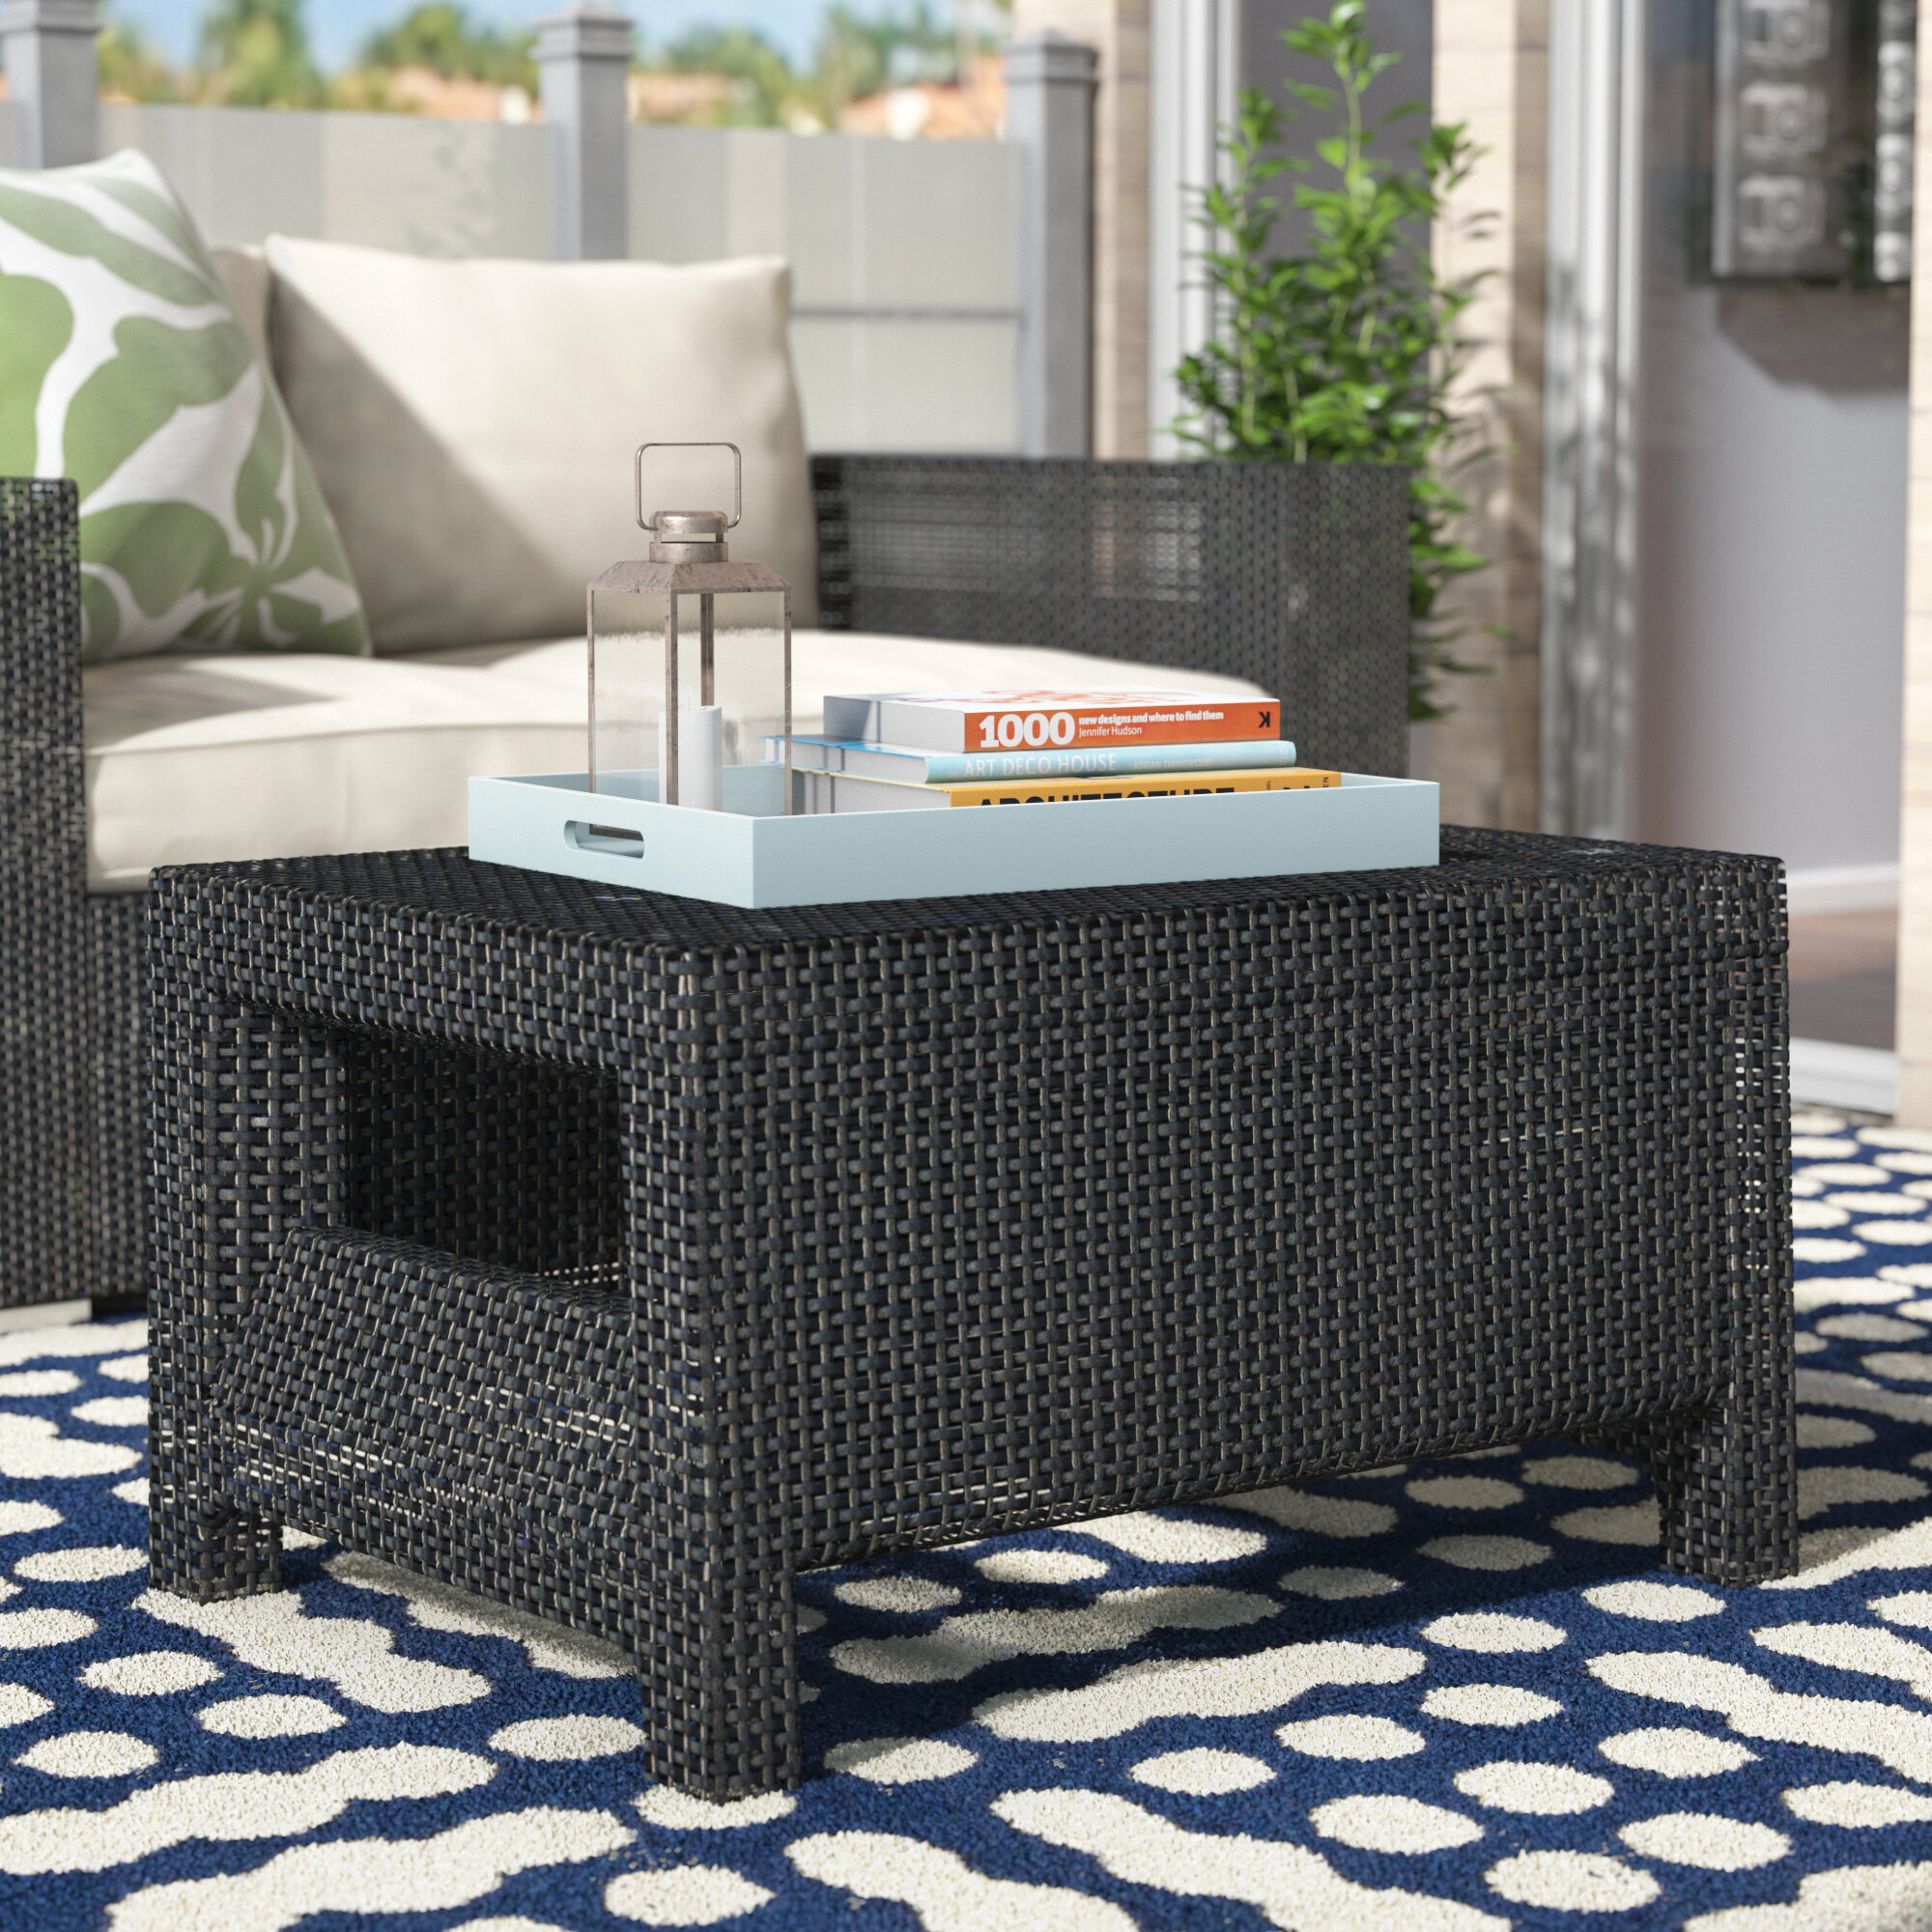 trends dining table fixed for modern chairs style plastic patio and ideas shocking outdoor chair furniture